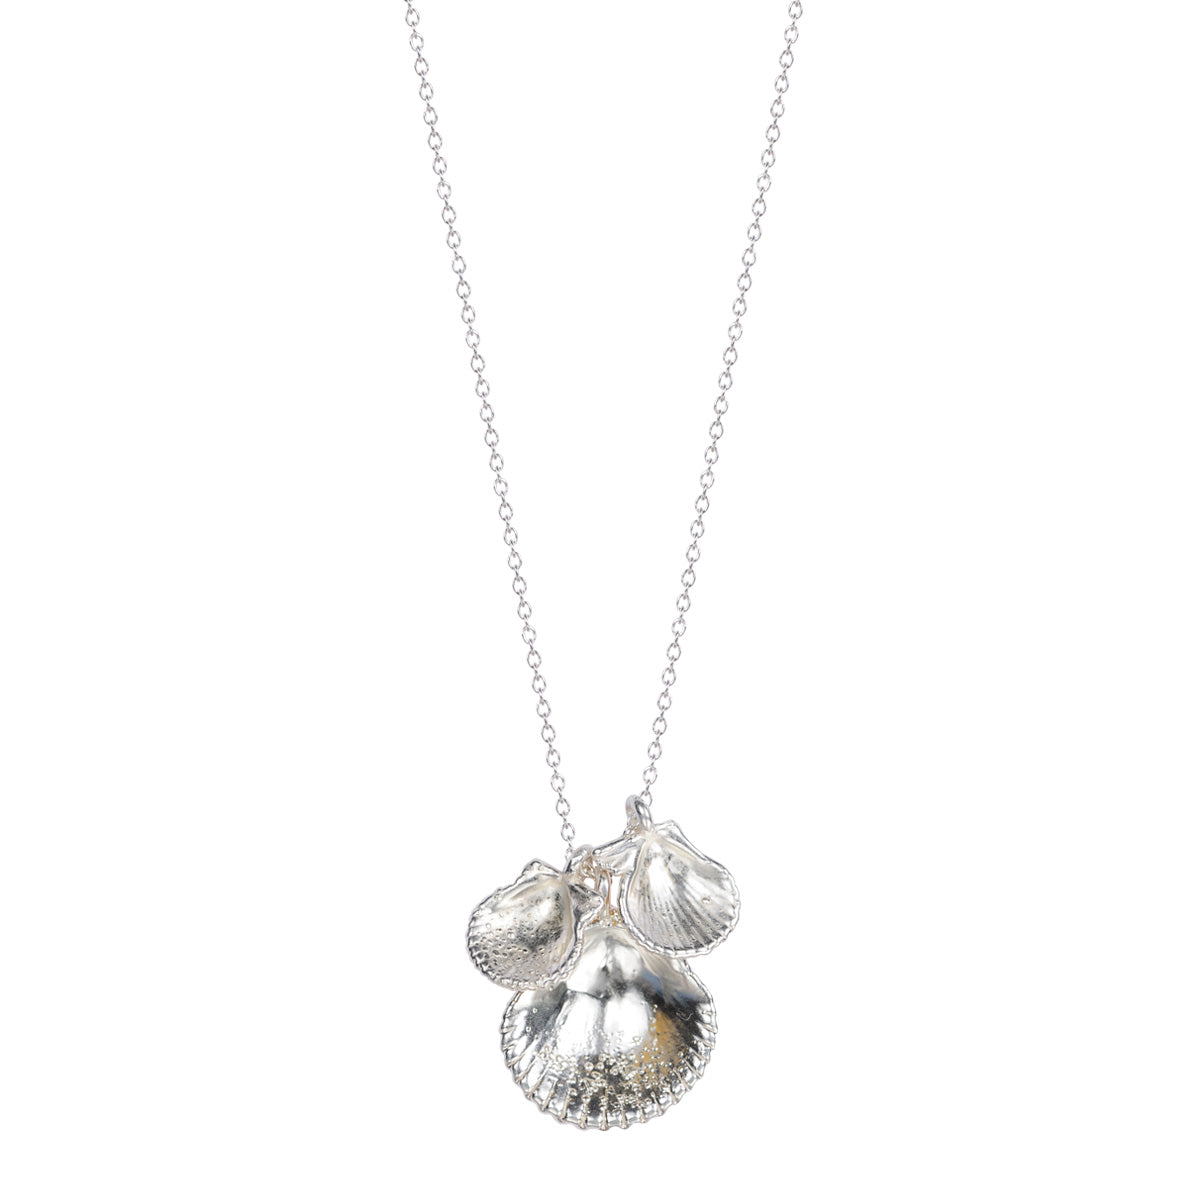 Silver Triple Calico Scallop Shell Necklace on Chain